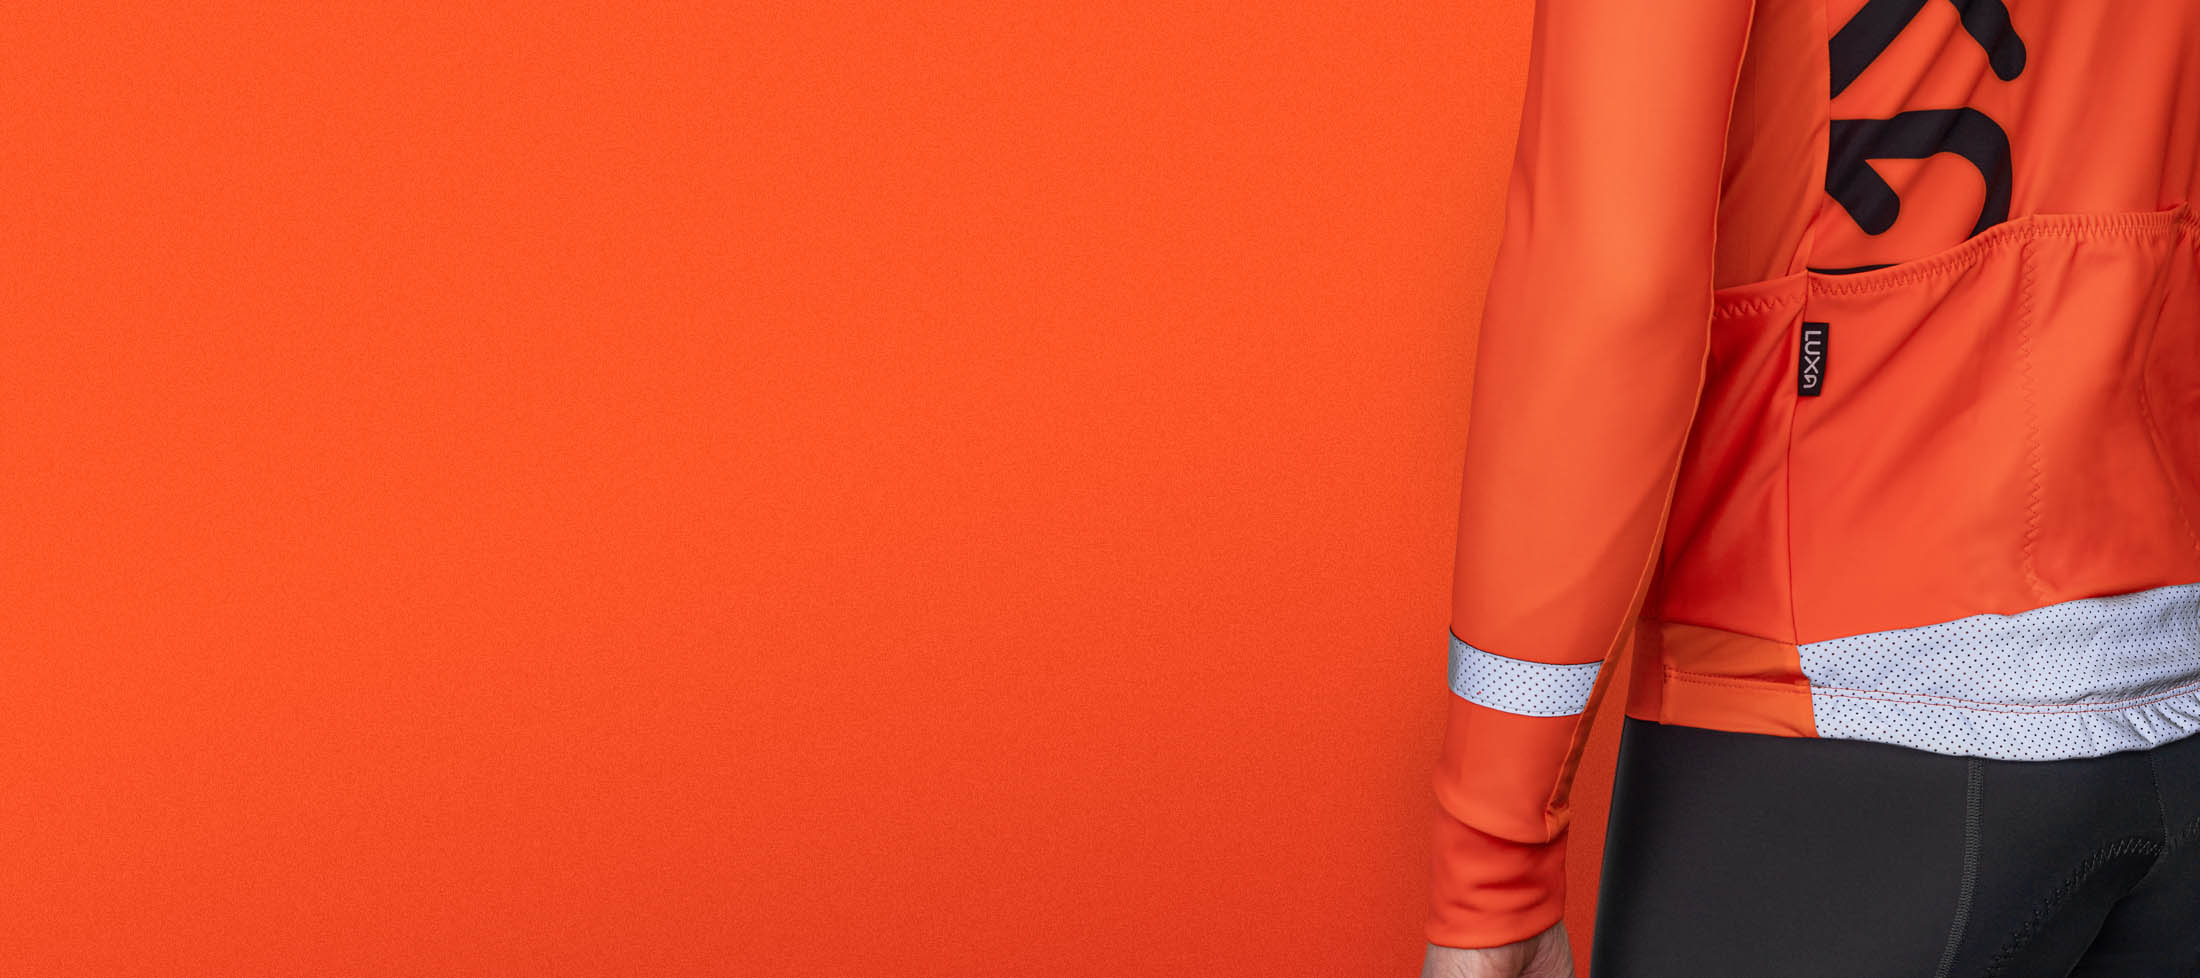 cycling apparel with high visible orange reflective colors